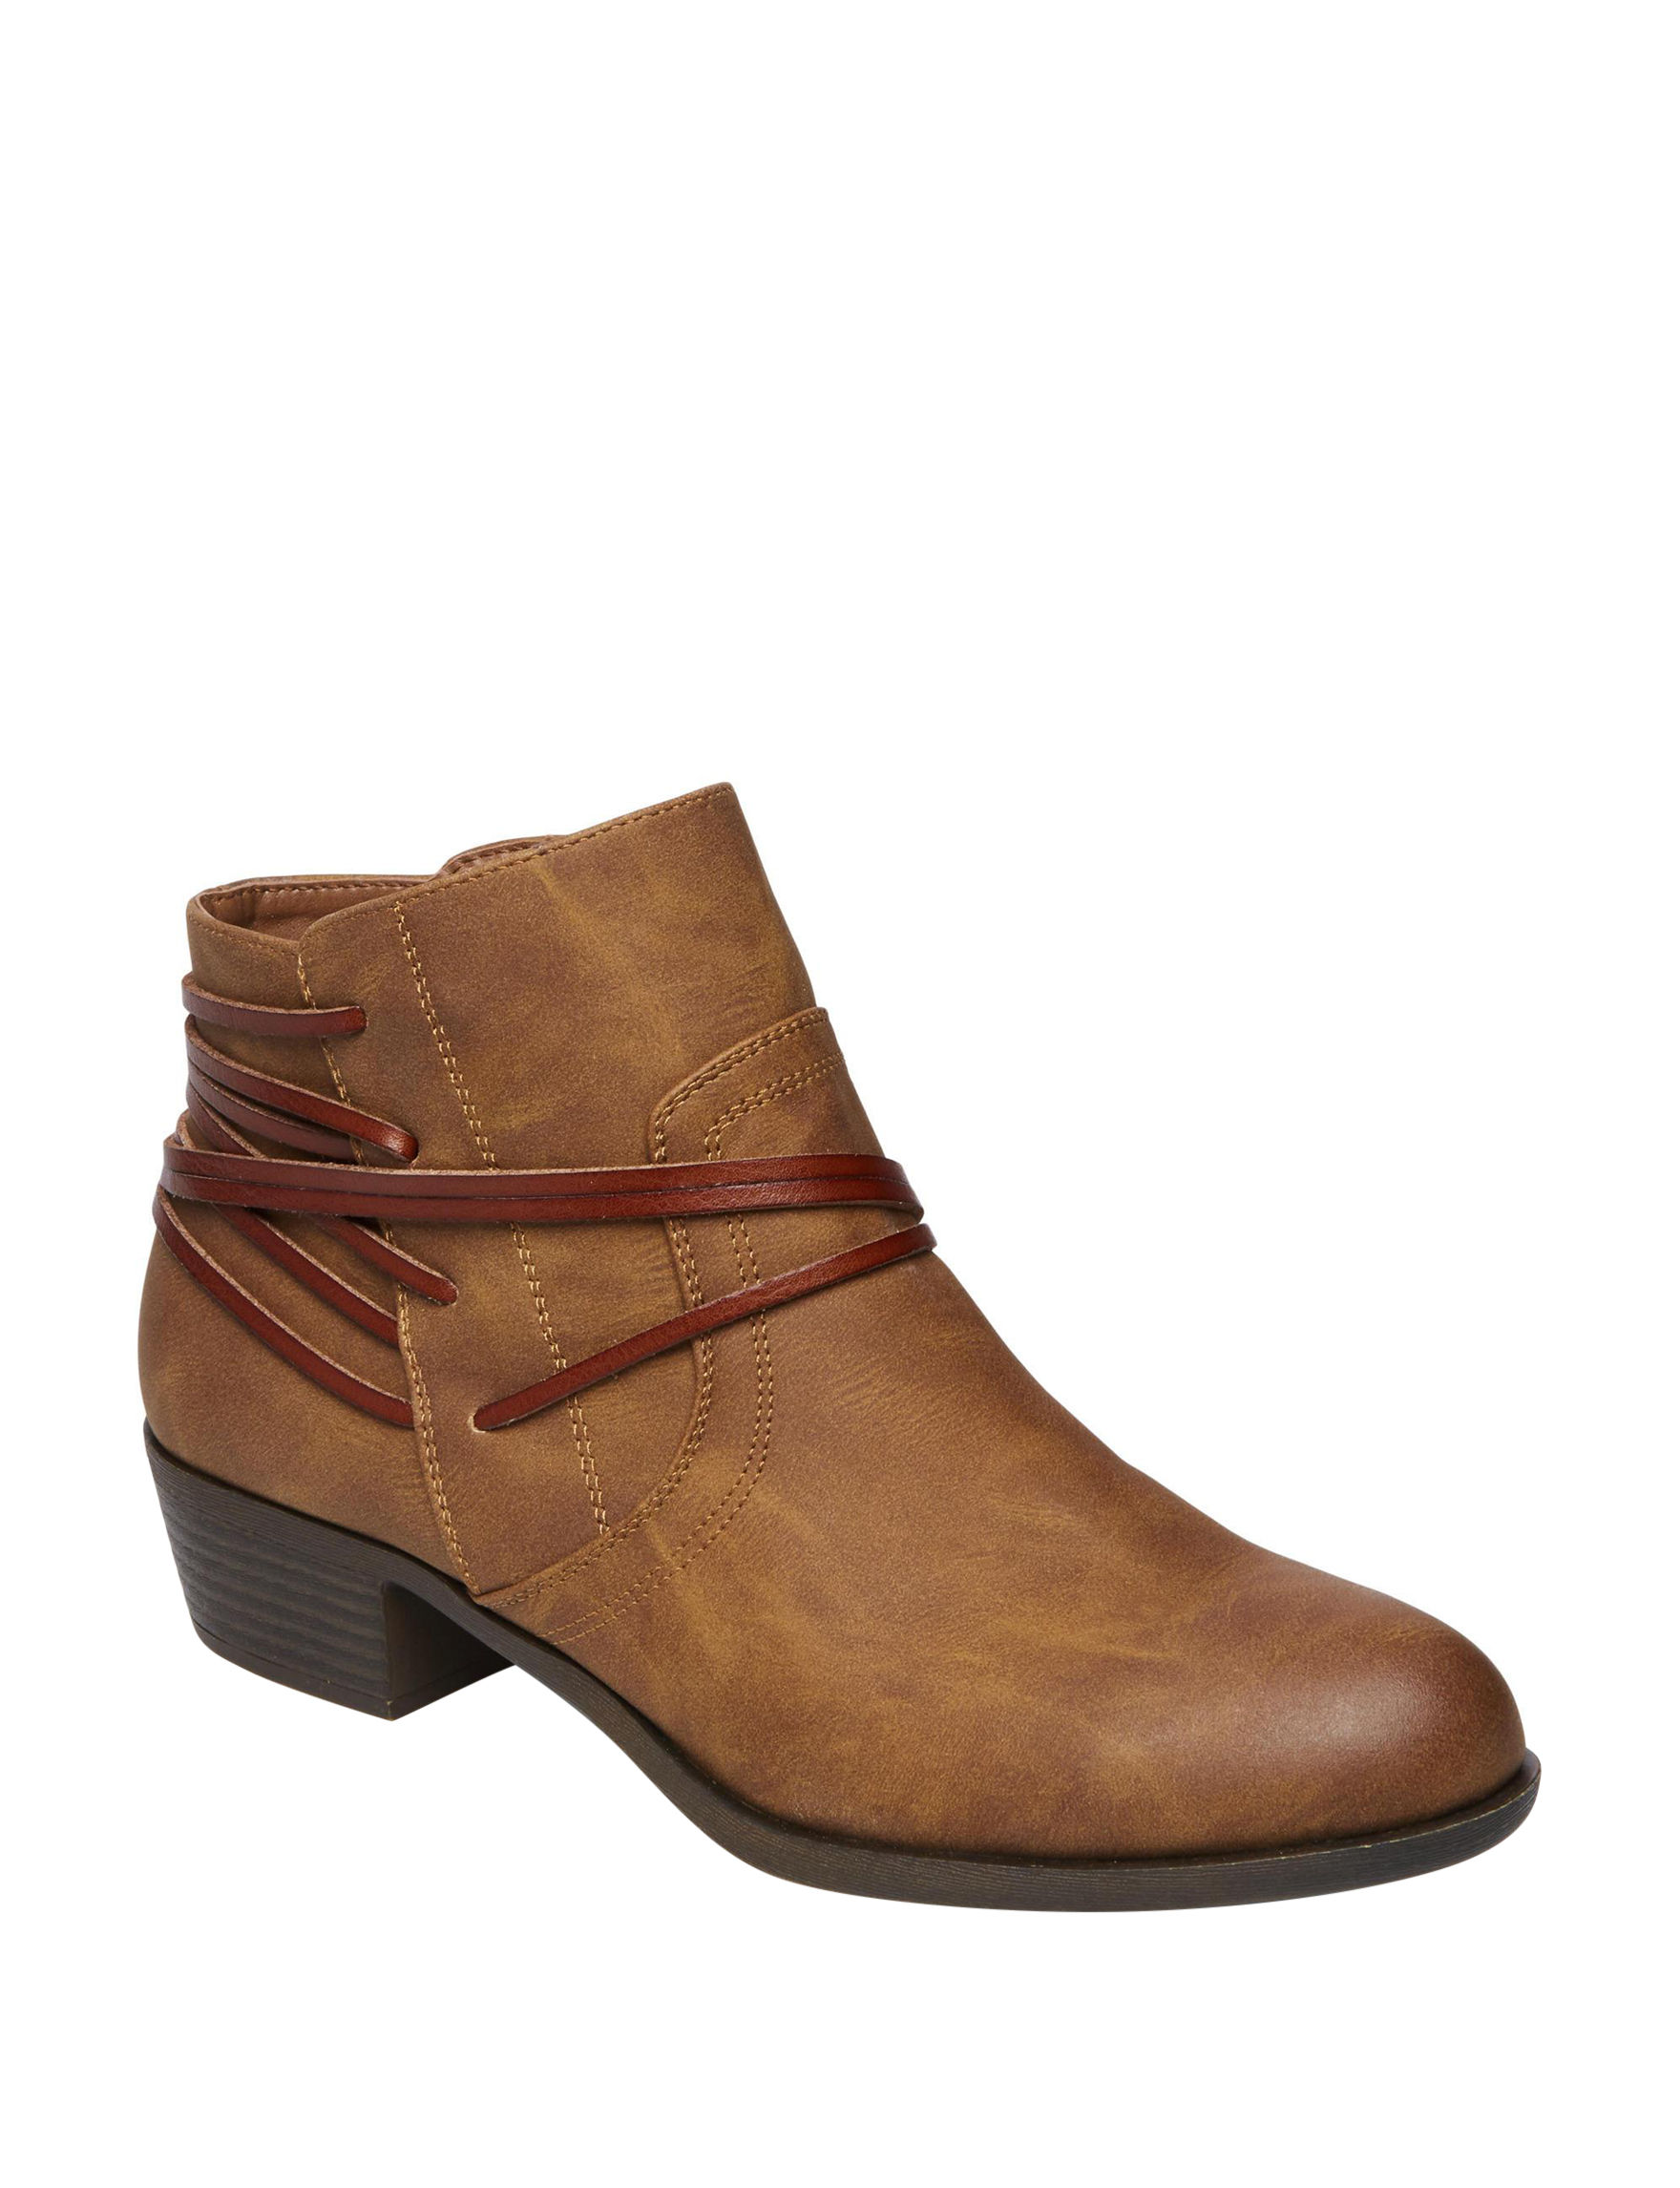 Madden Girl Tan Ankle Boots & Booties